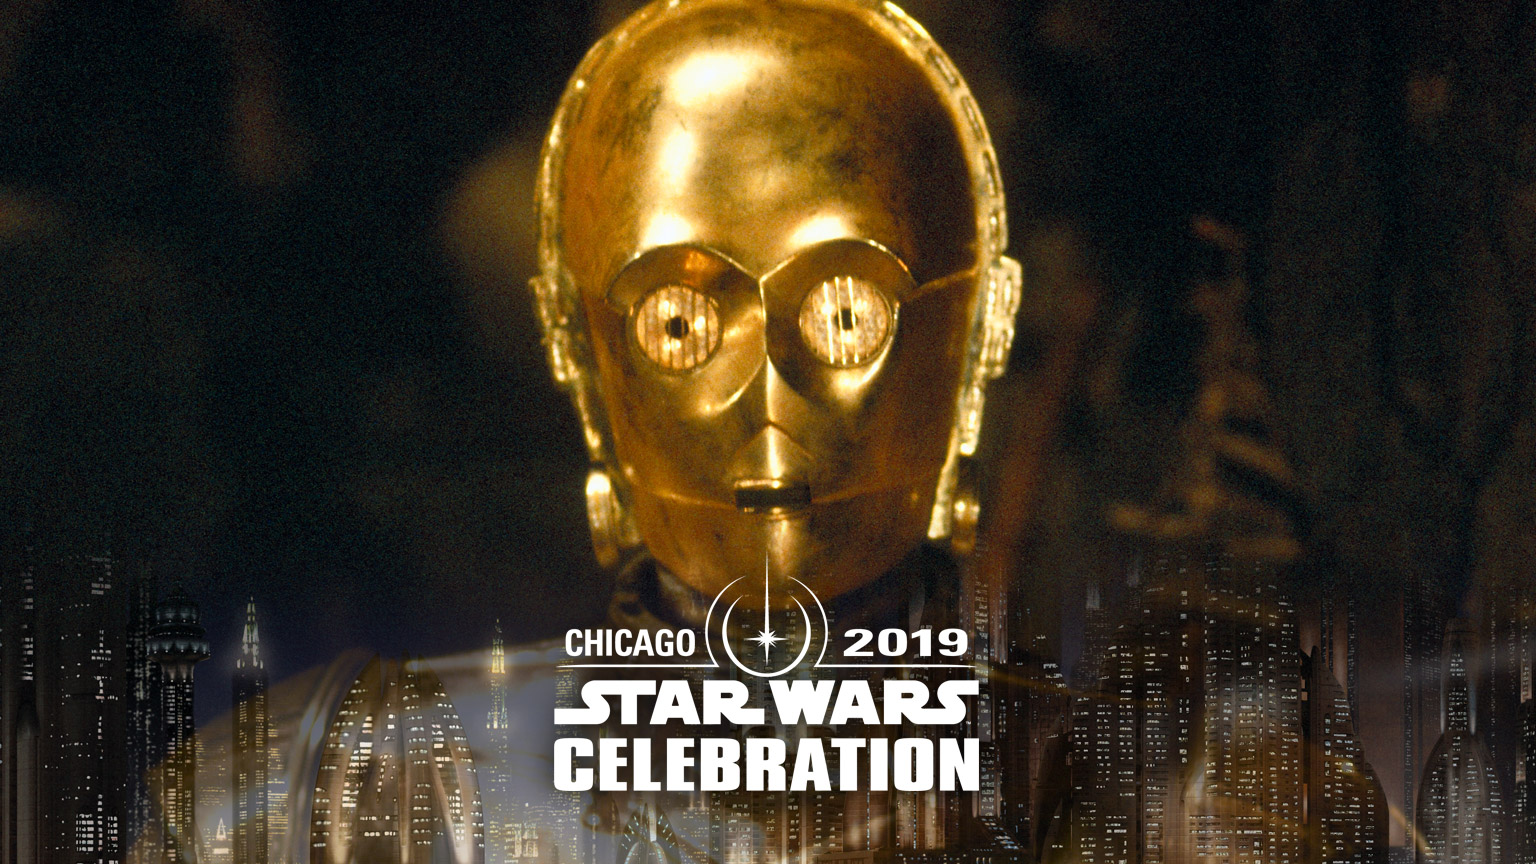 Star Wars Celebration Chicago Adds Anthony Daniels